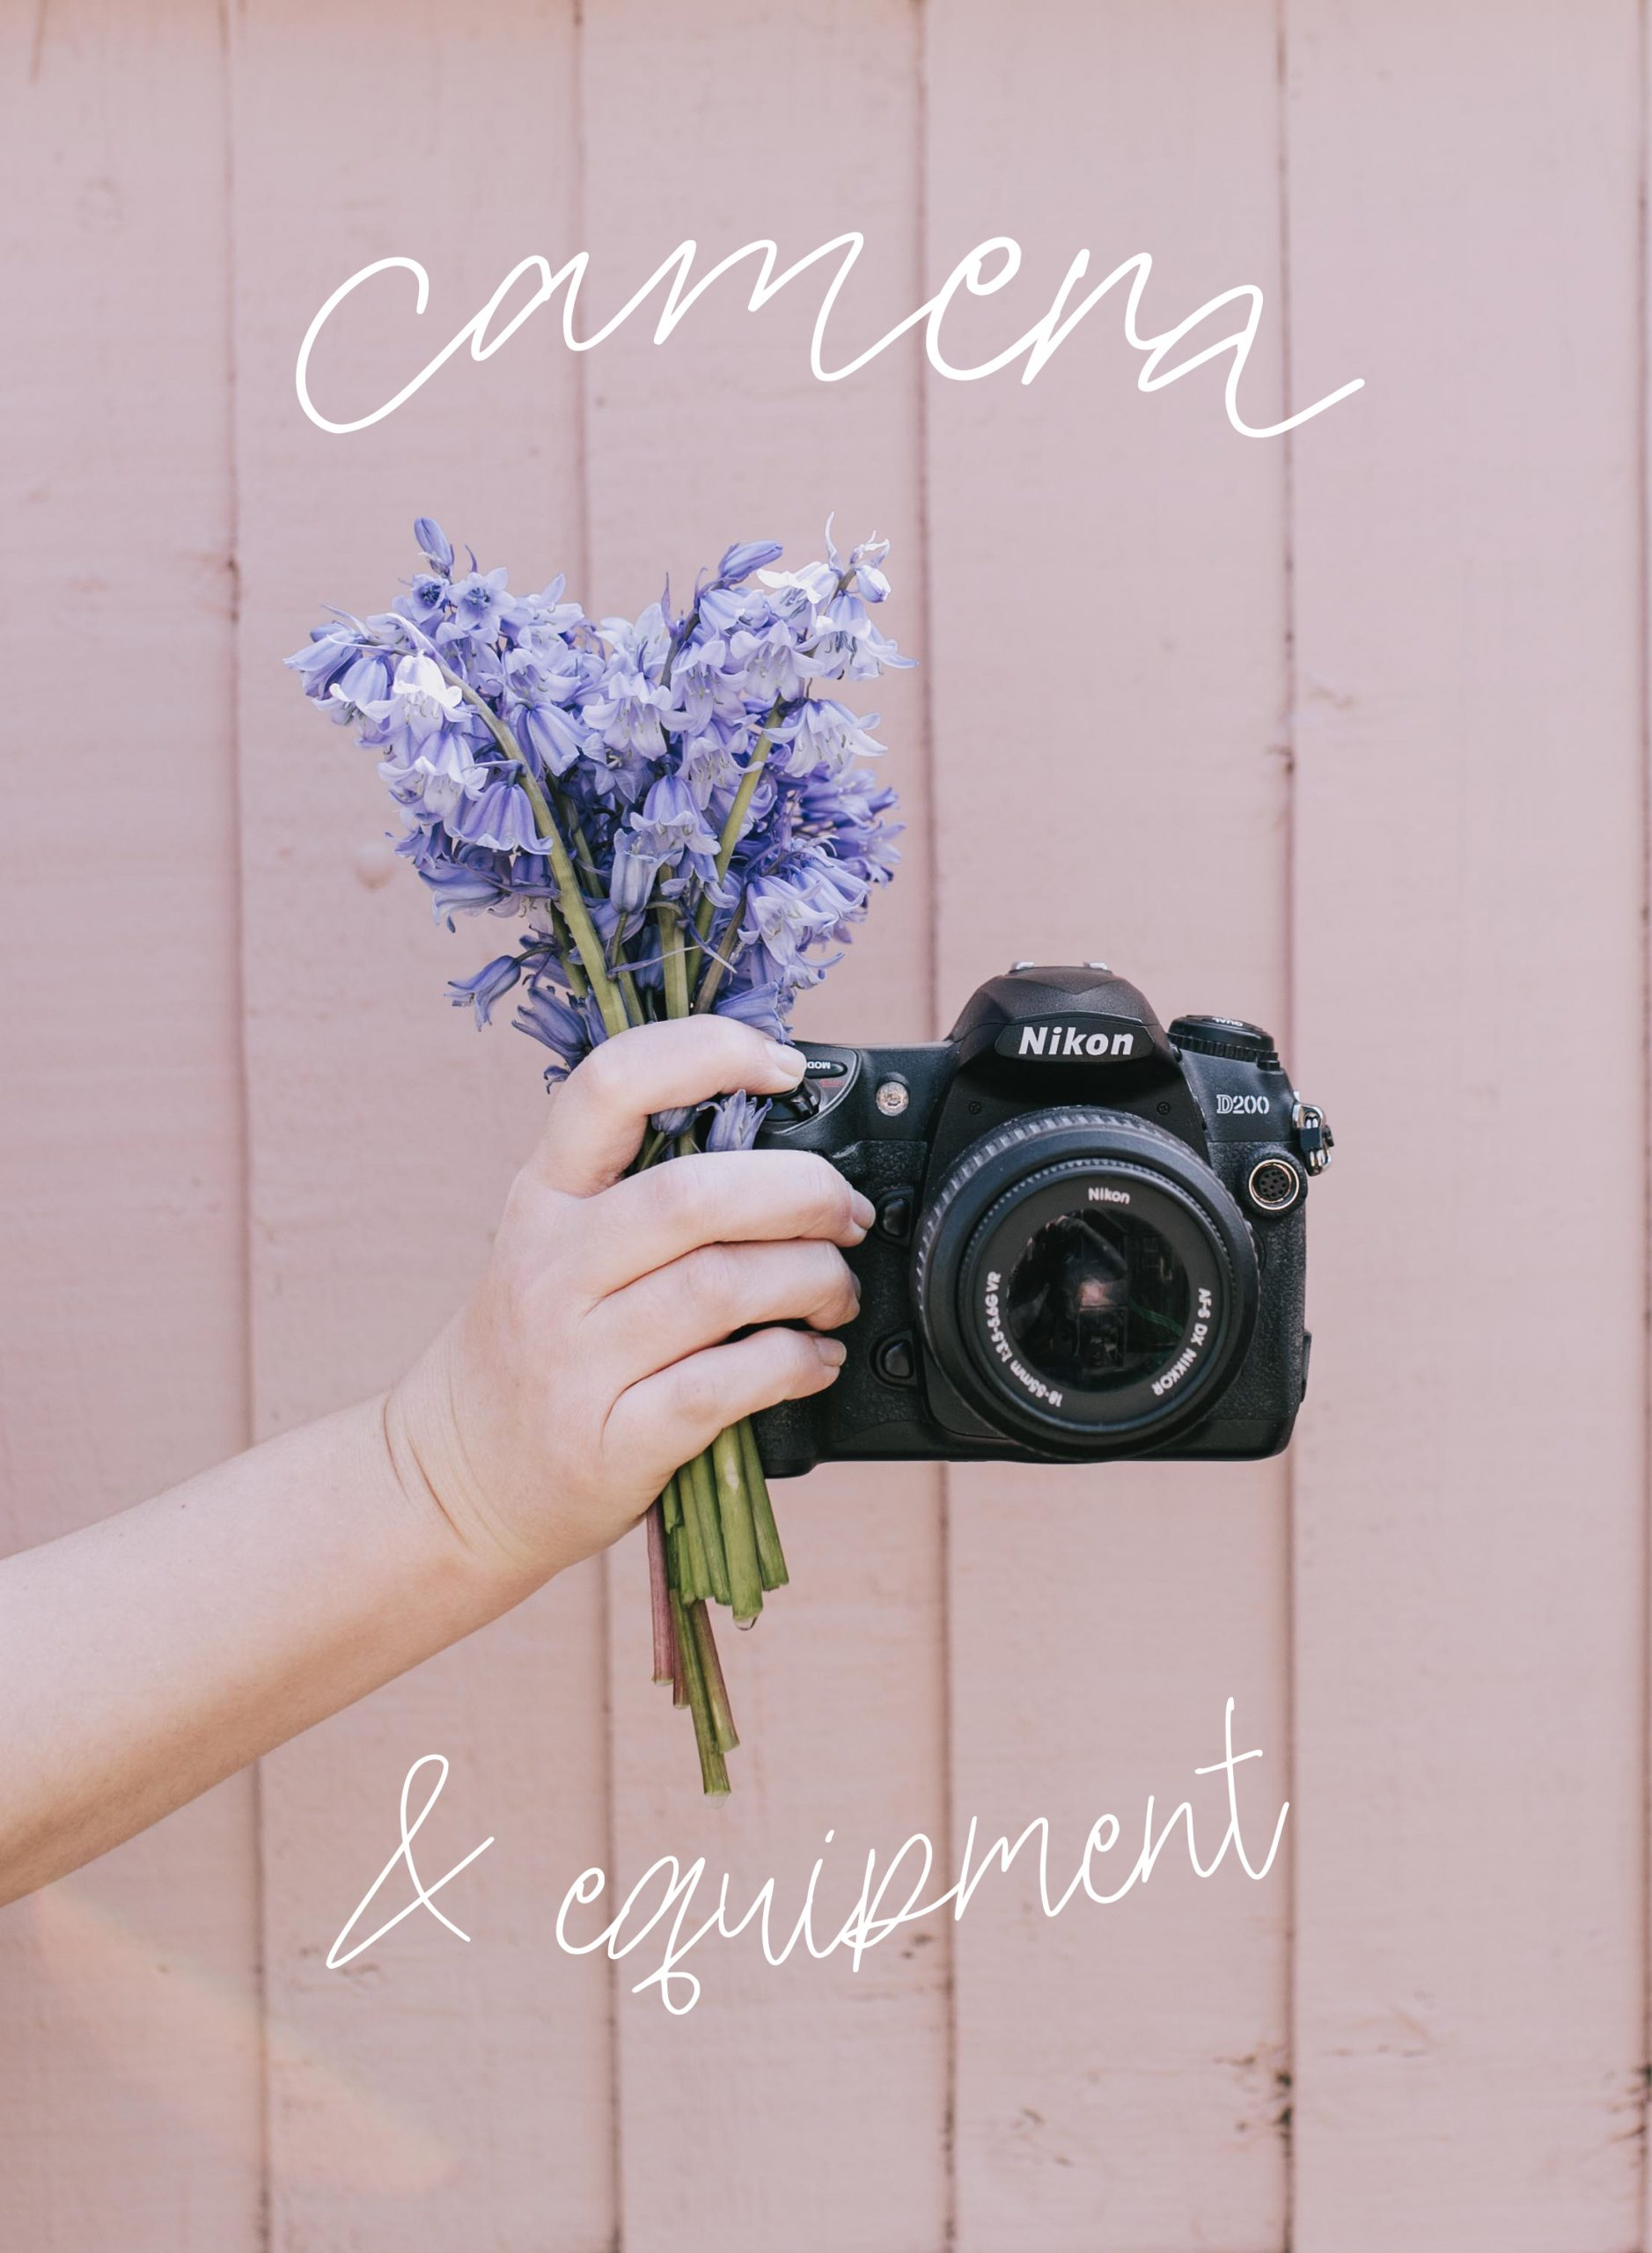 holding Nikon d200 camera with flowers